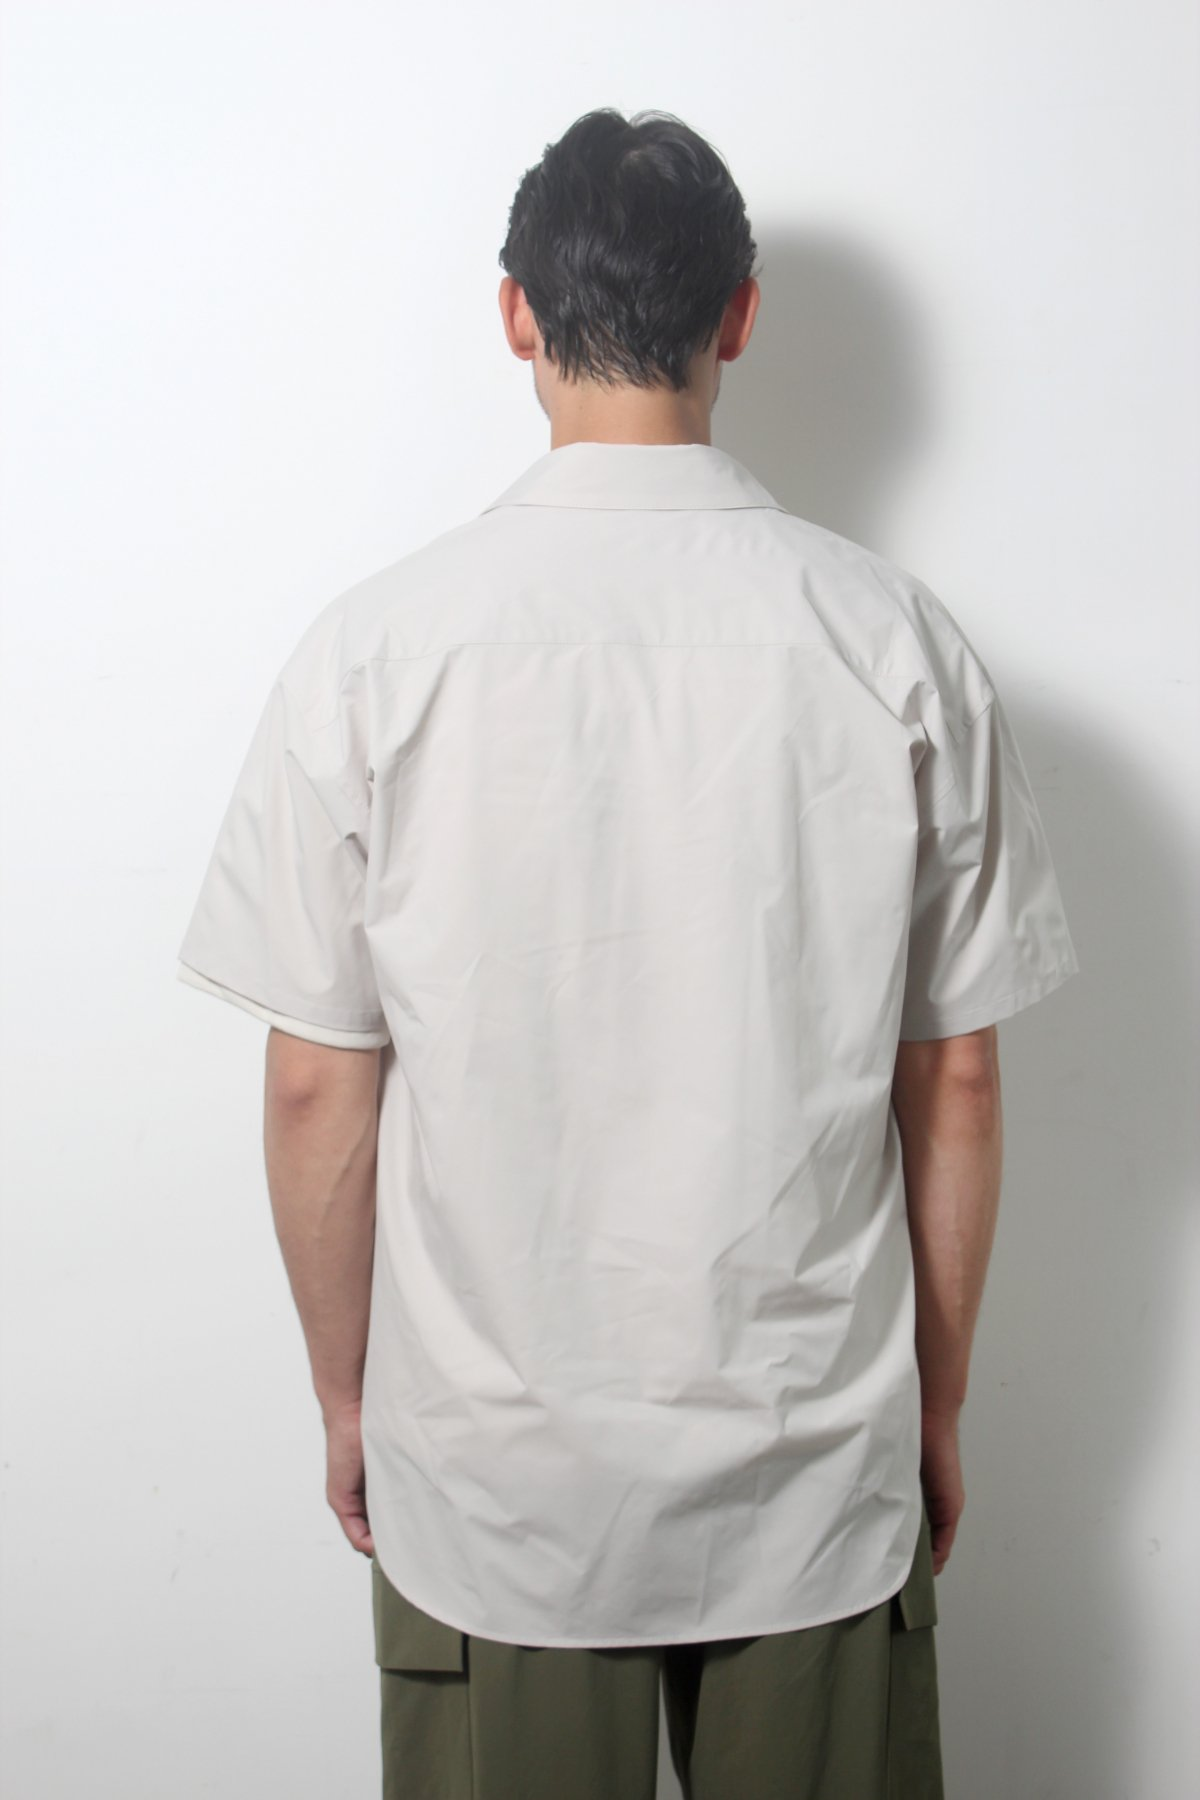 S/S Over size SHIRTS(SOLOTEX) 詳細画像8